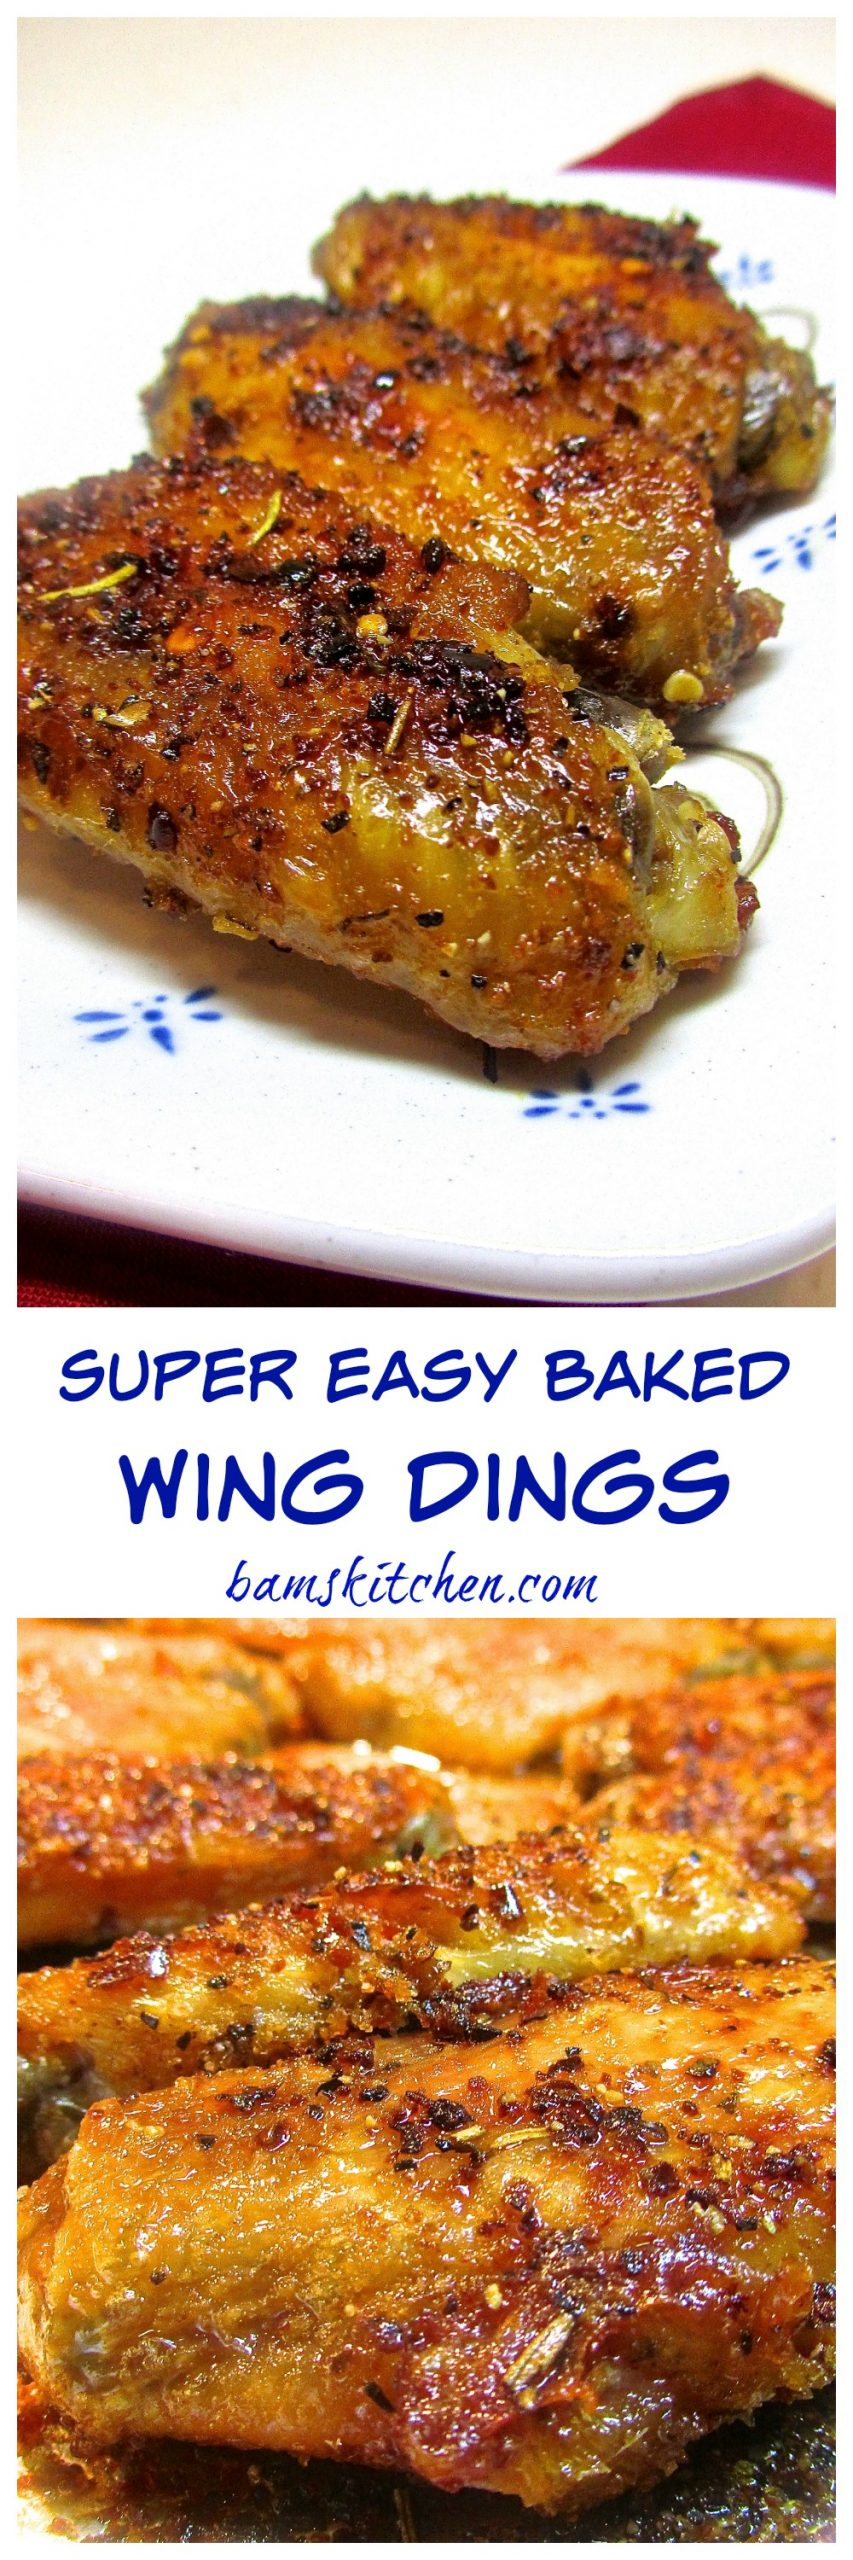 Super Easy Baked Wing Dings - Healthy World Cuisine